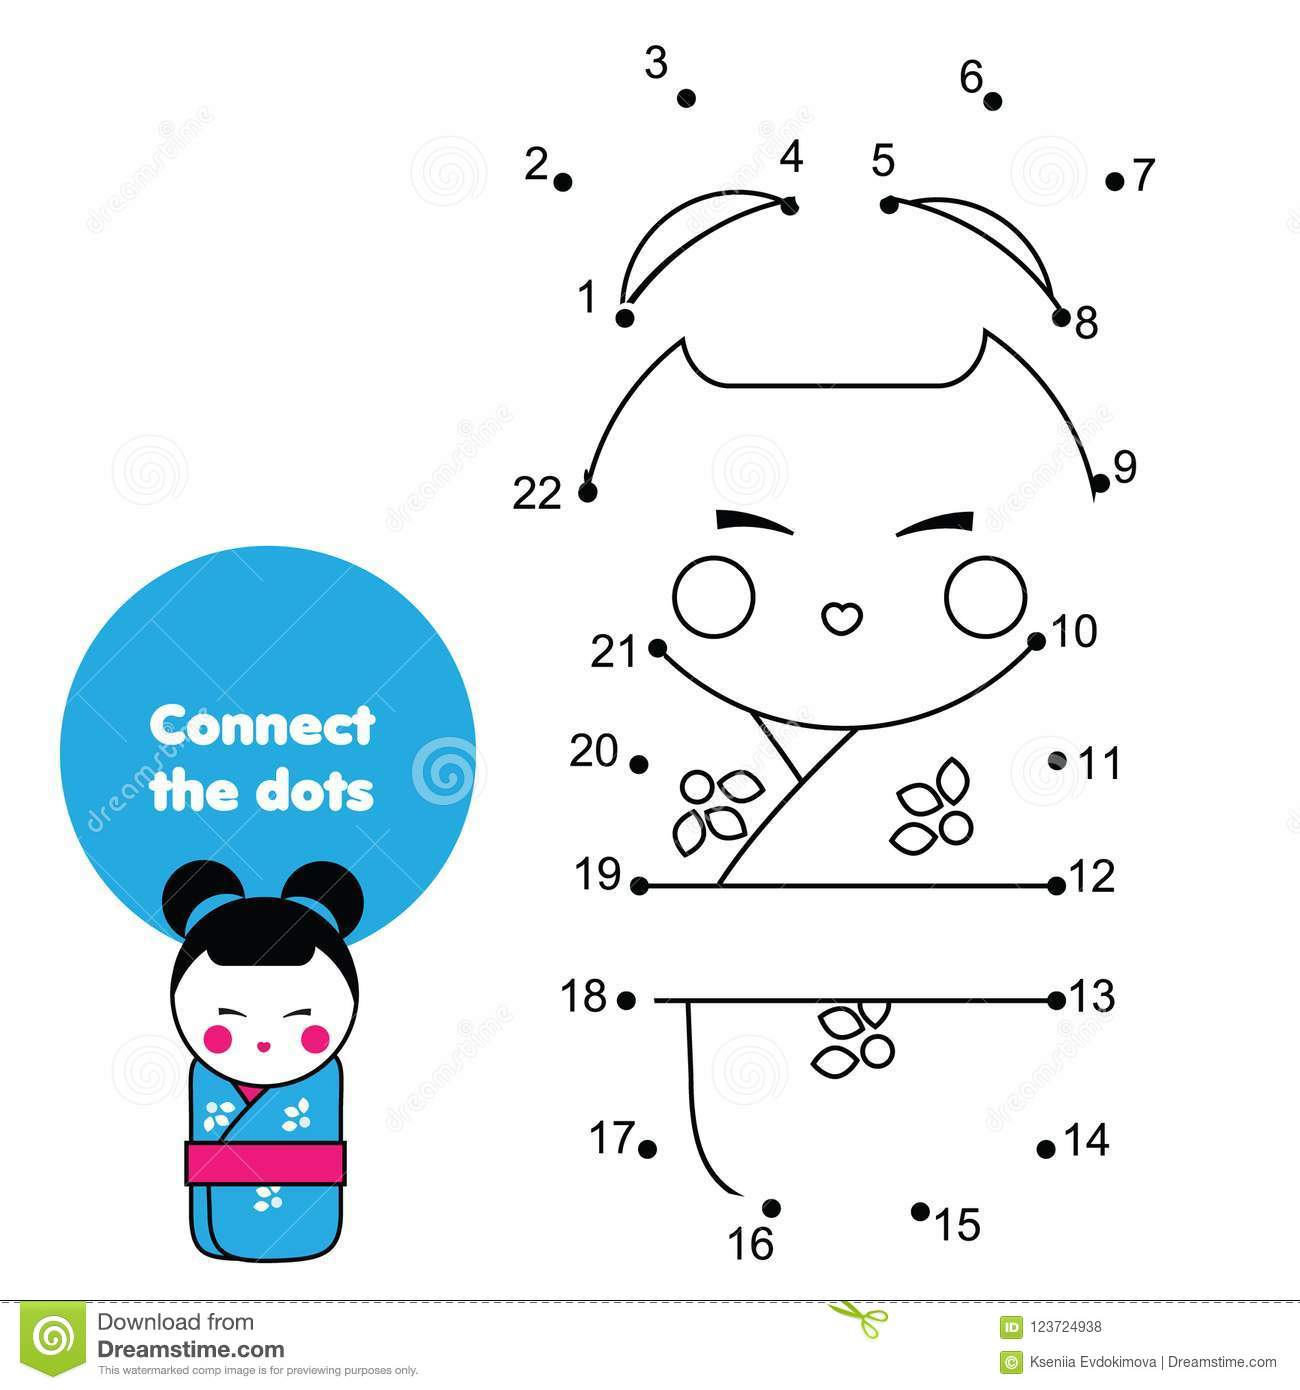 Connect The Dots By Numbers Educational Game For Children And Kids Japanese Kokeshii Doll In